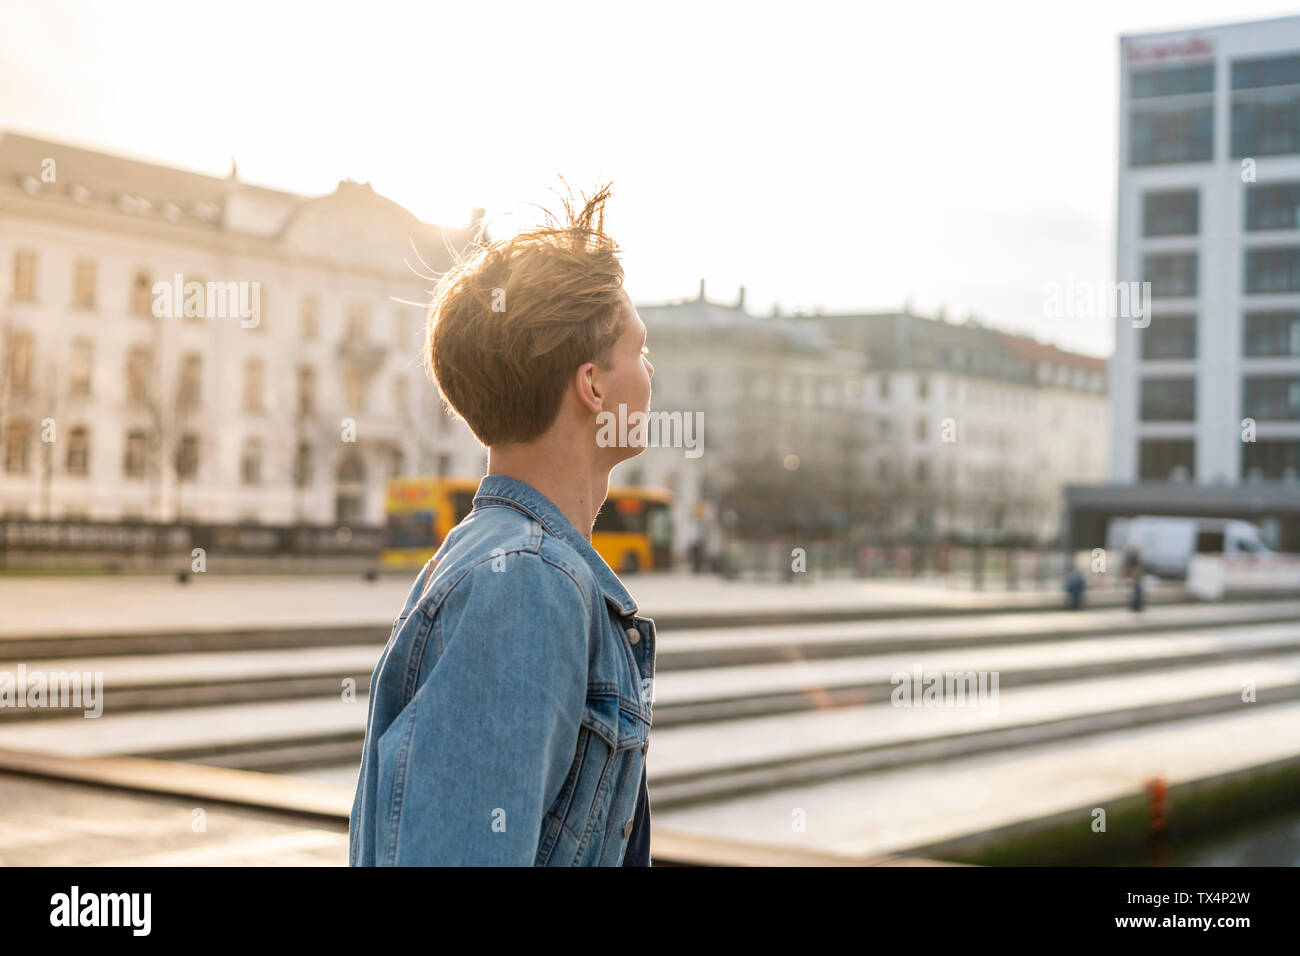 Denmark, Copenhagen, young man in the city - Stock Image